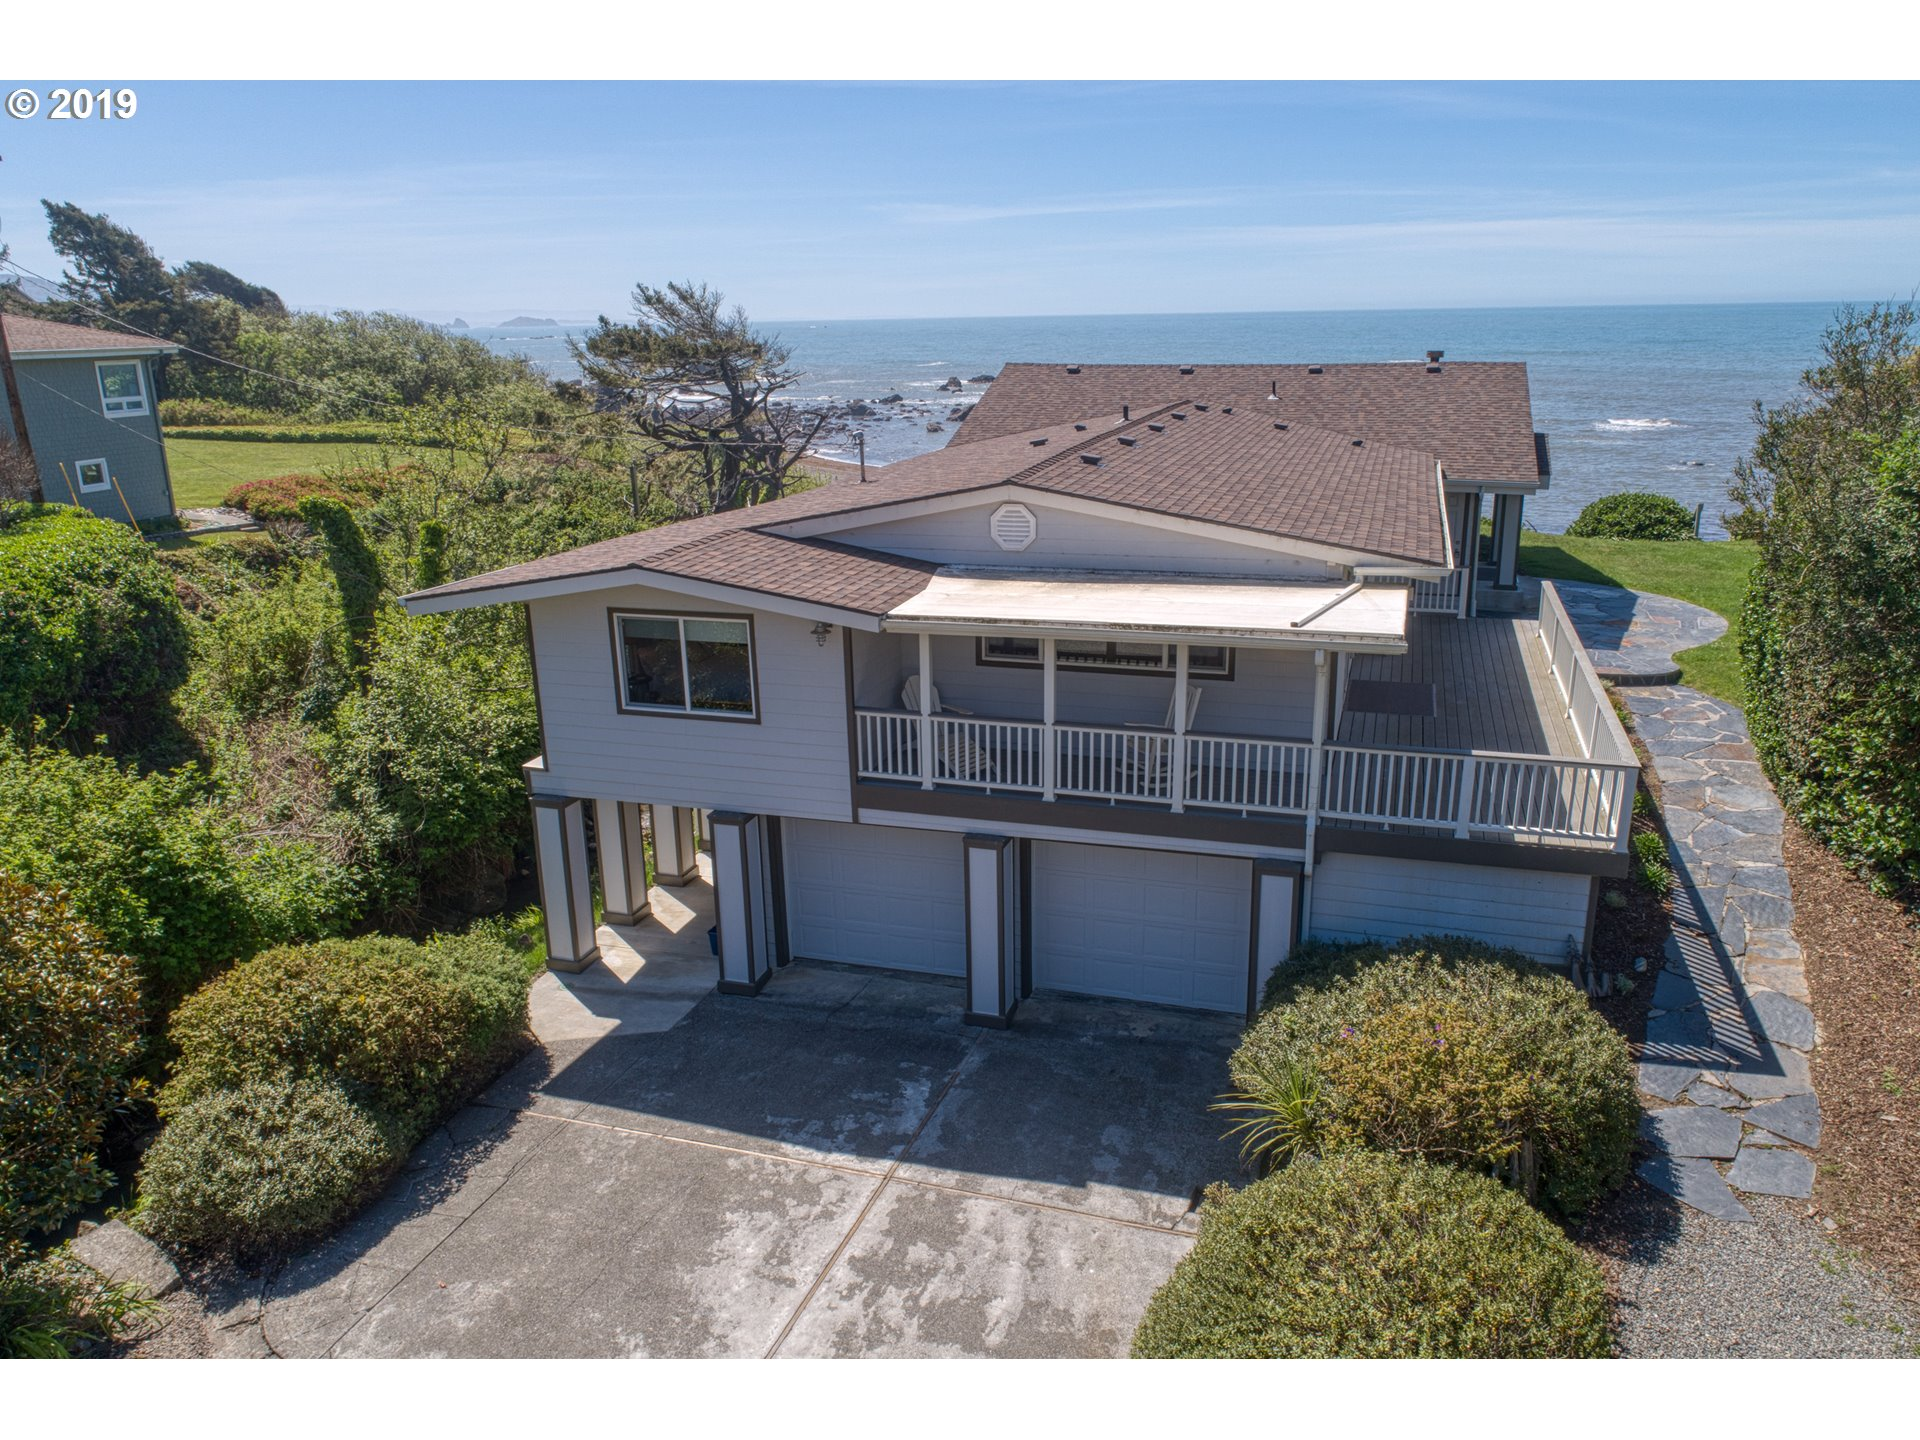 Brookings Oregon Real Estate | Homes for Sale in Brookings OR